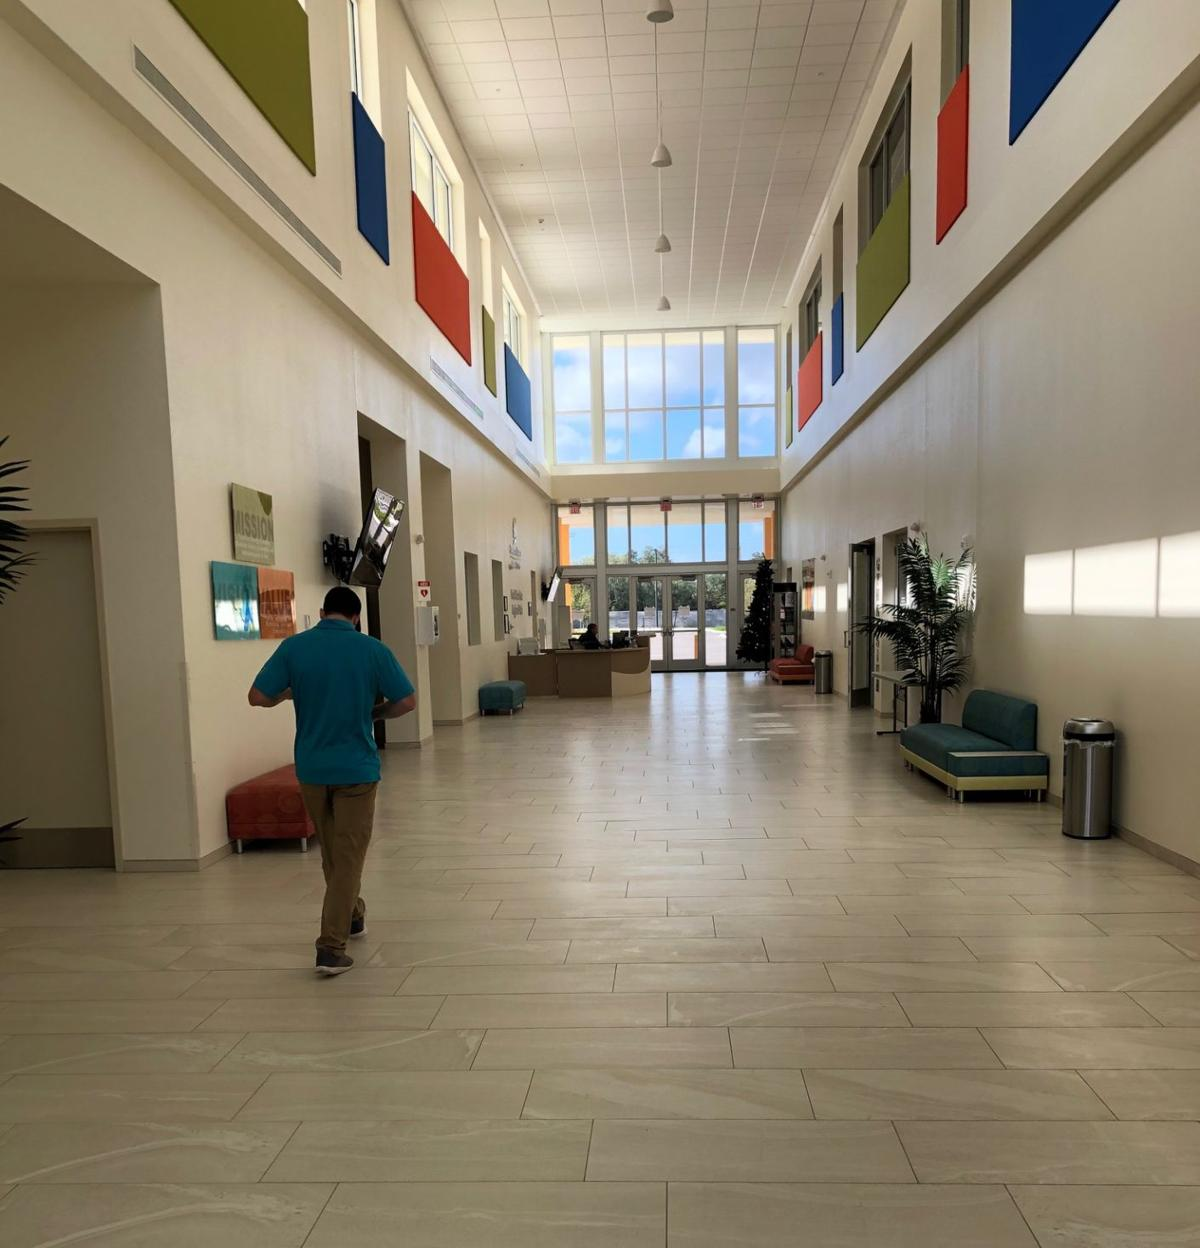 Recreation center lobby